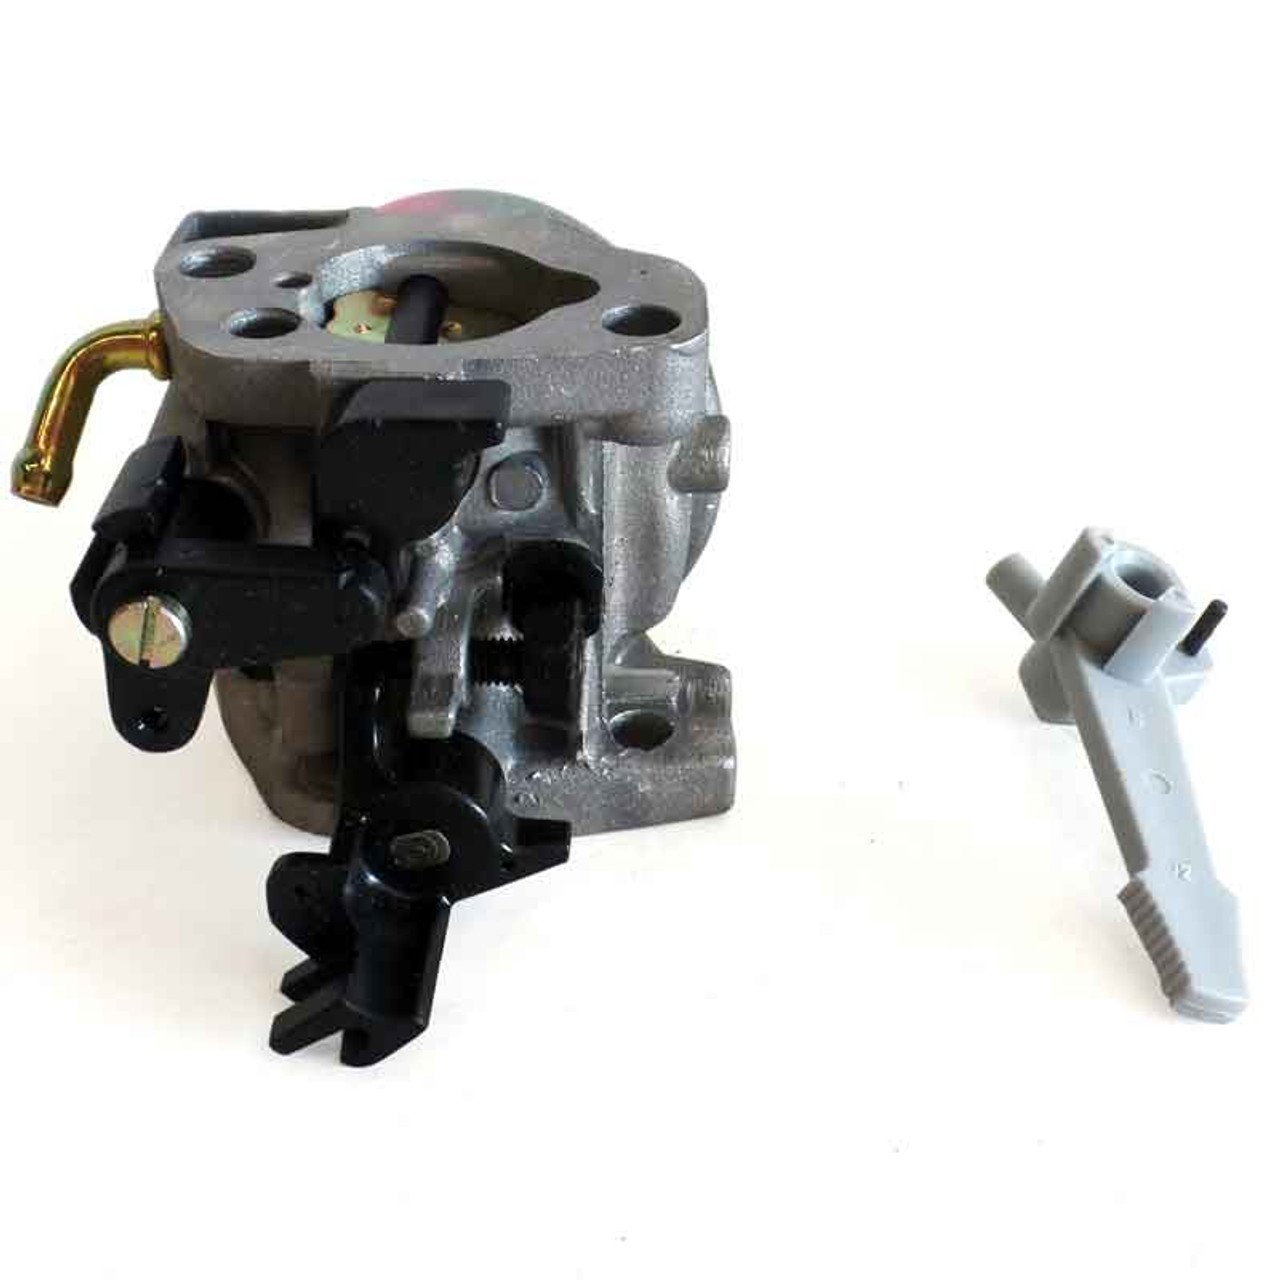 Carburetor Assembly For Generac Carb Part# 0K84300190